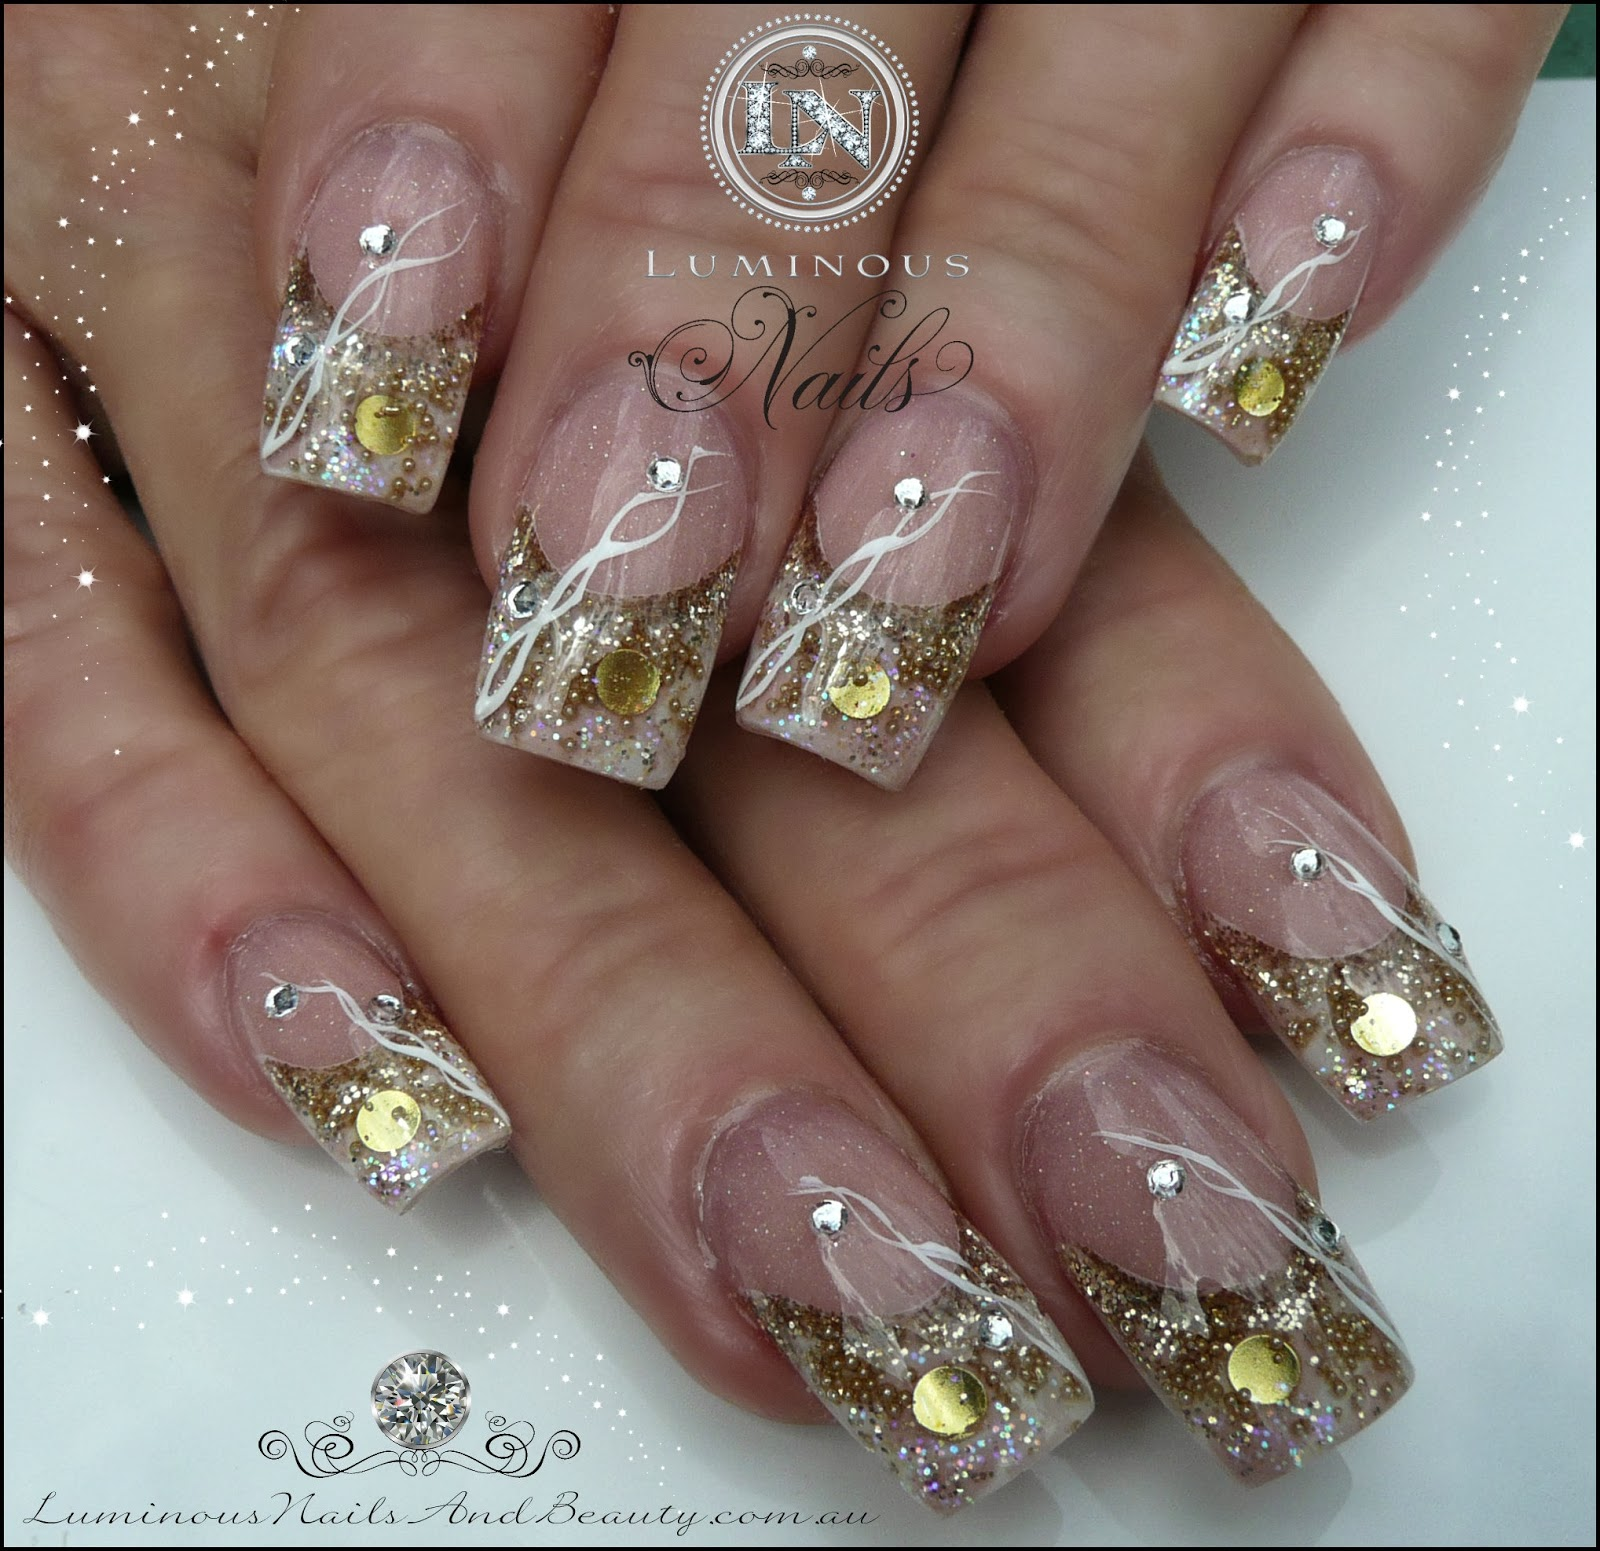 Acrylic Nails With Bows And Diamonds Tumblr